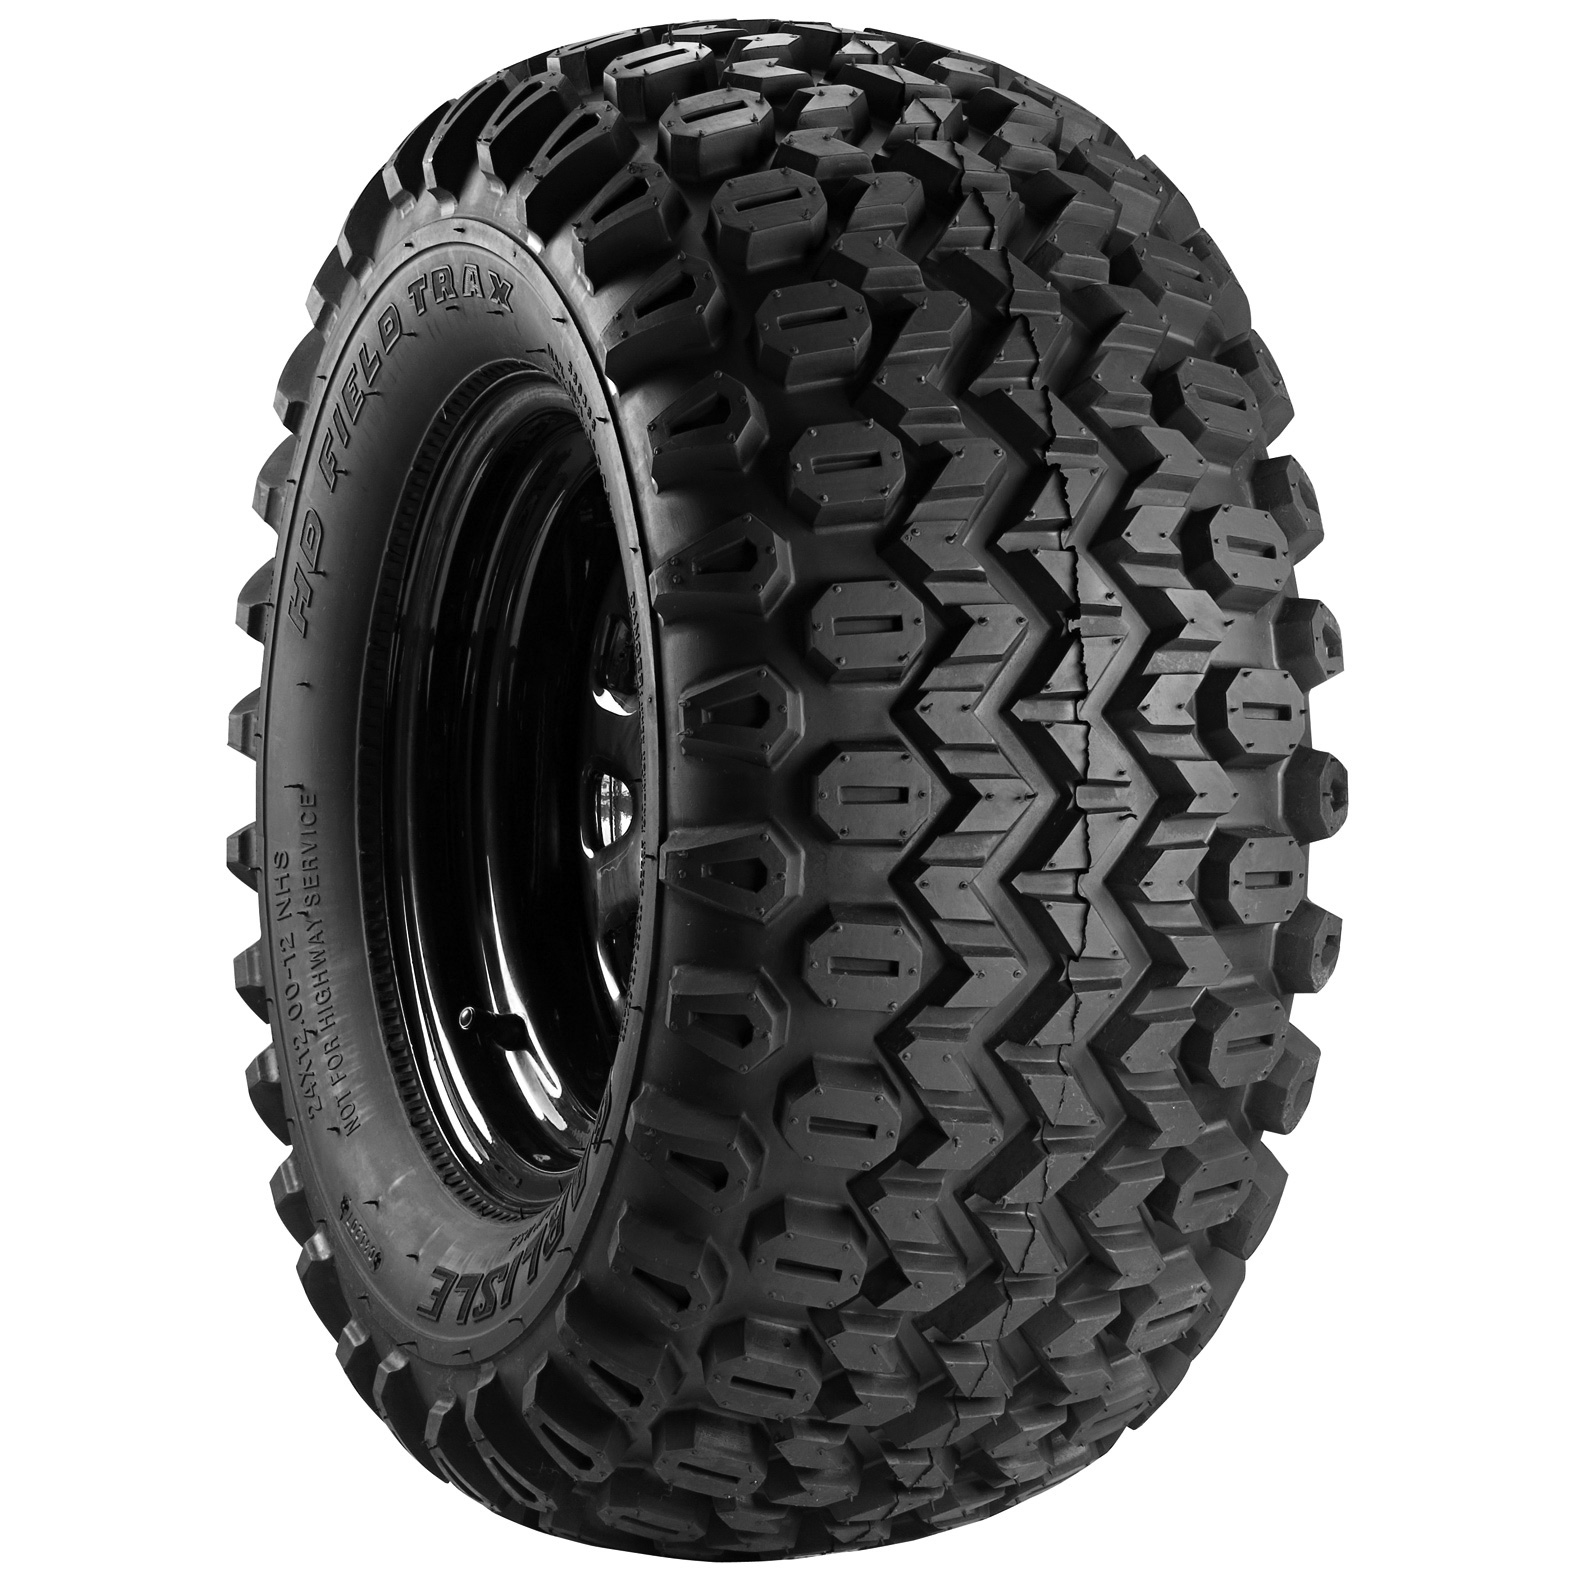 Carlisle HD Field Trax ATV Tire - Angle